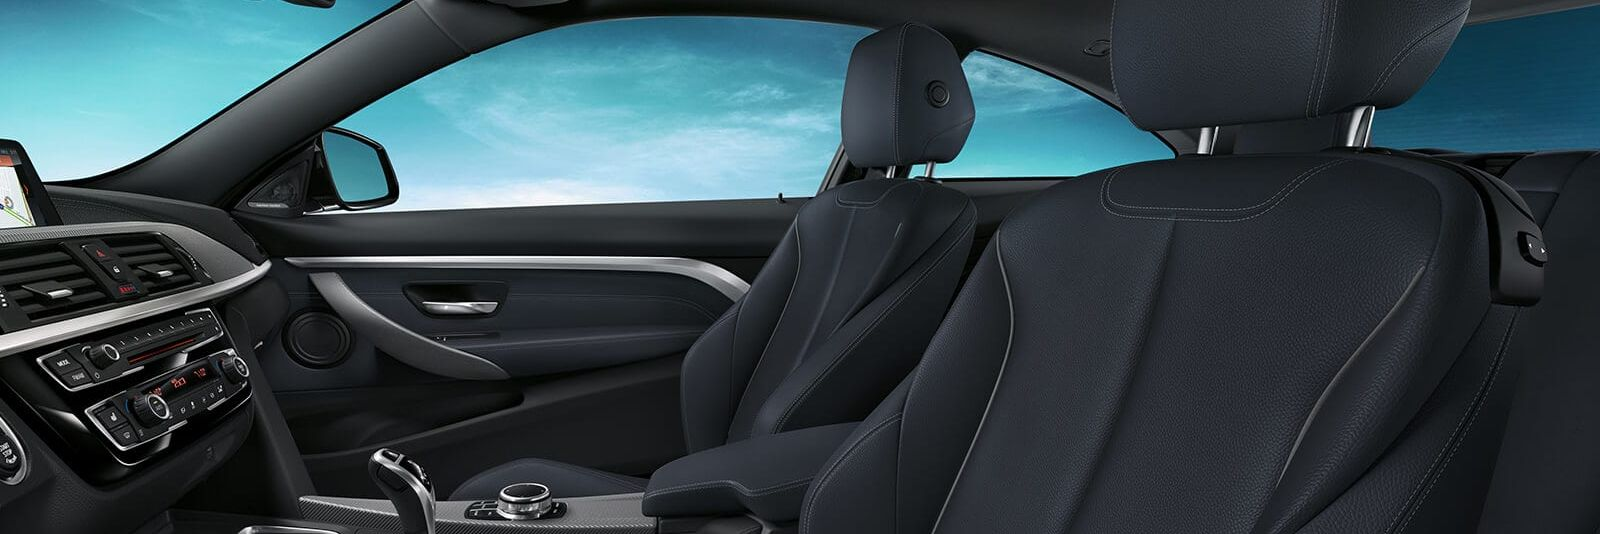 Spacious Cabin of the 2019 BMW 4 Series